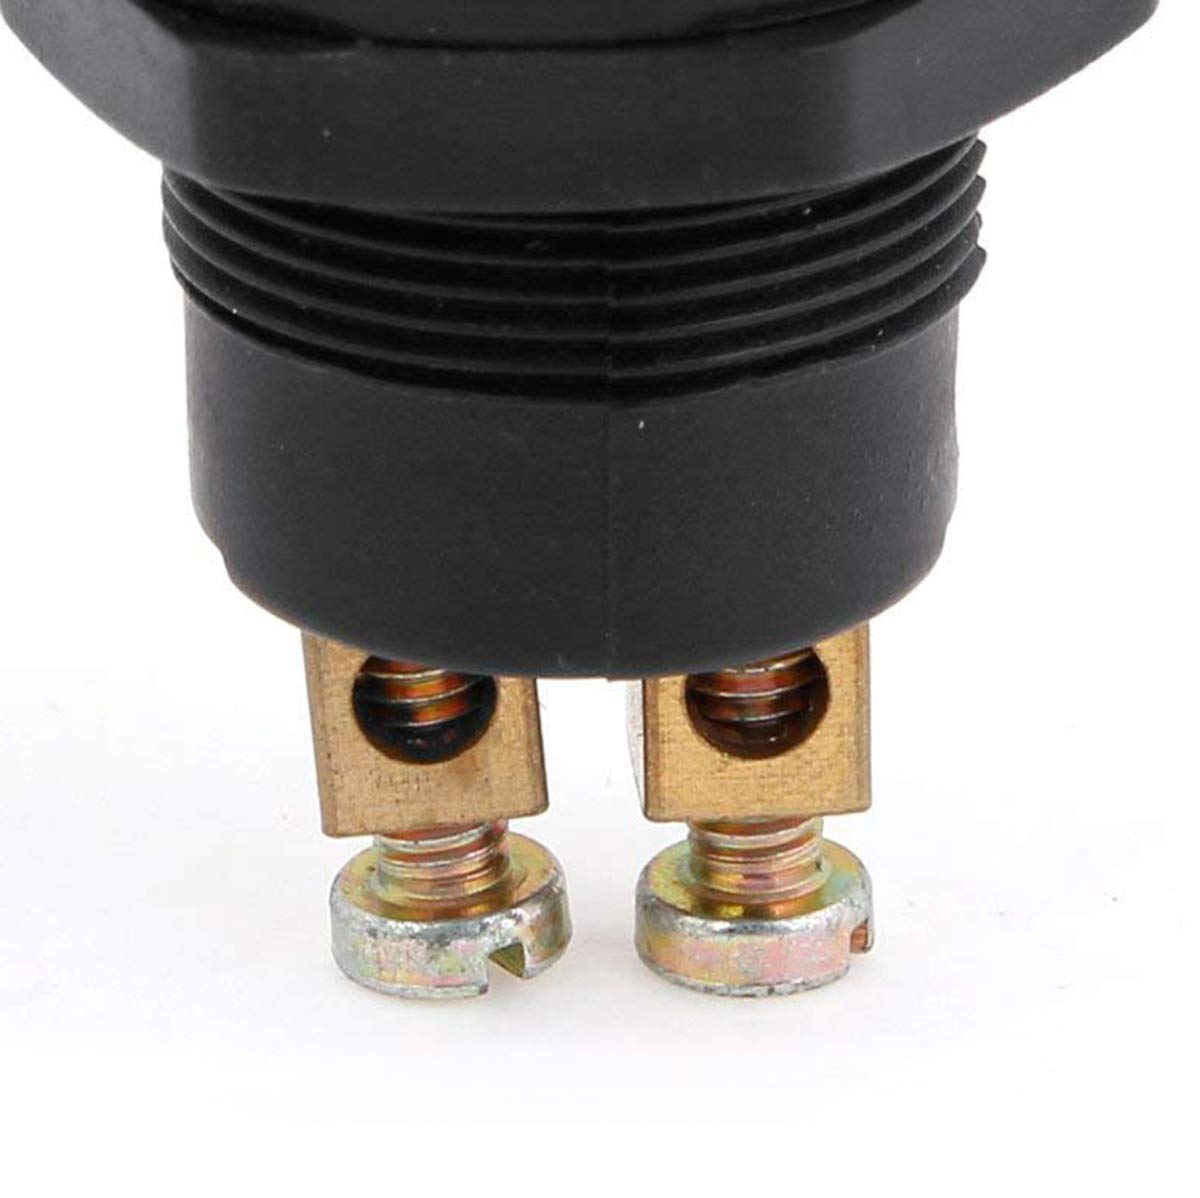 Reset Push Button Switch High Flush Reactable Screw Terminals Auto Car Switch ON Autoly 5pcs DC 12V Round Cap Top Waterproof Metal Momentary OFF-